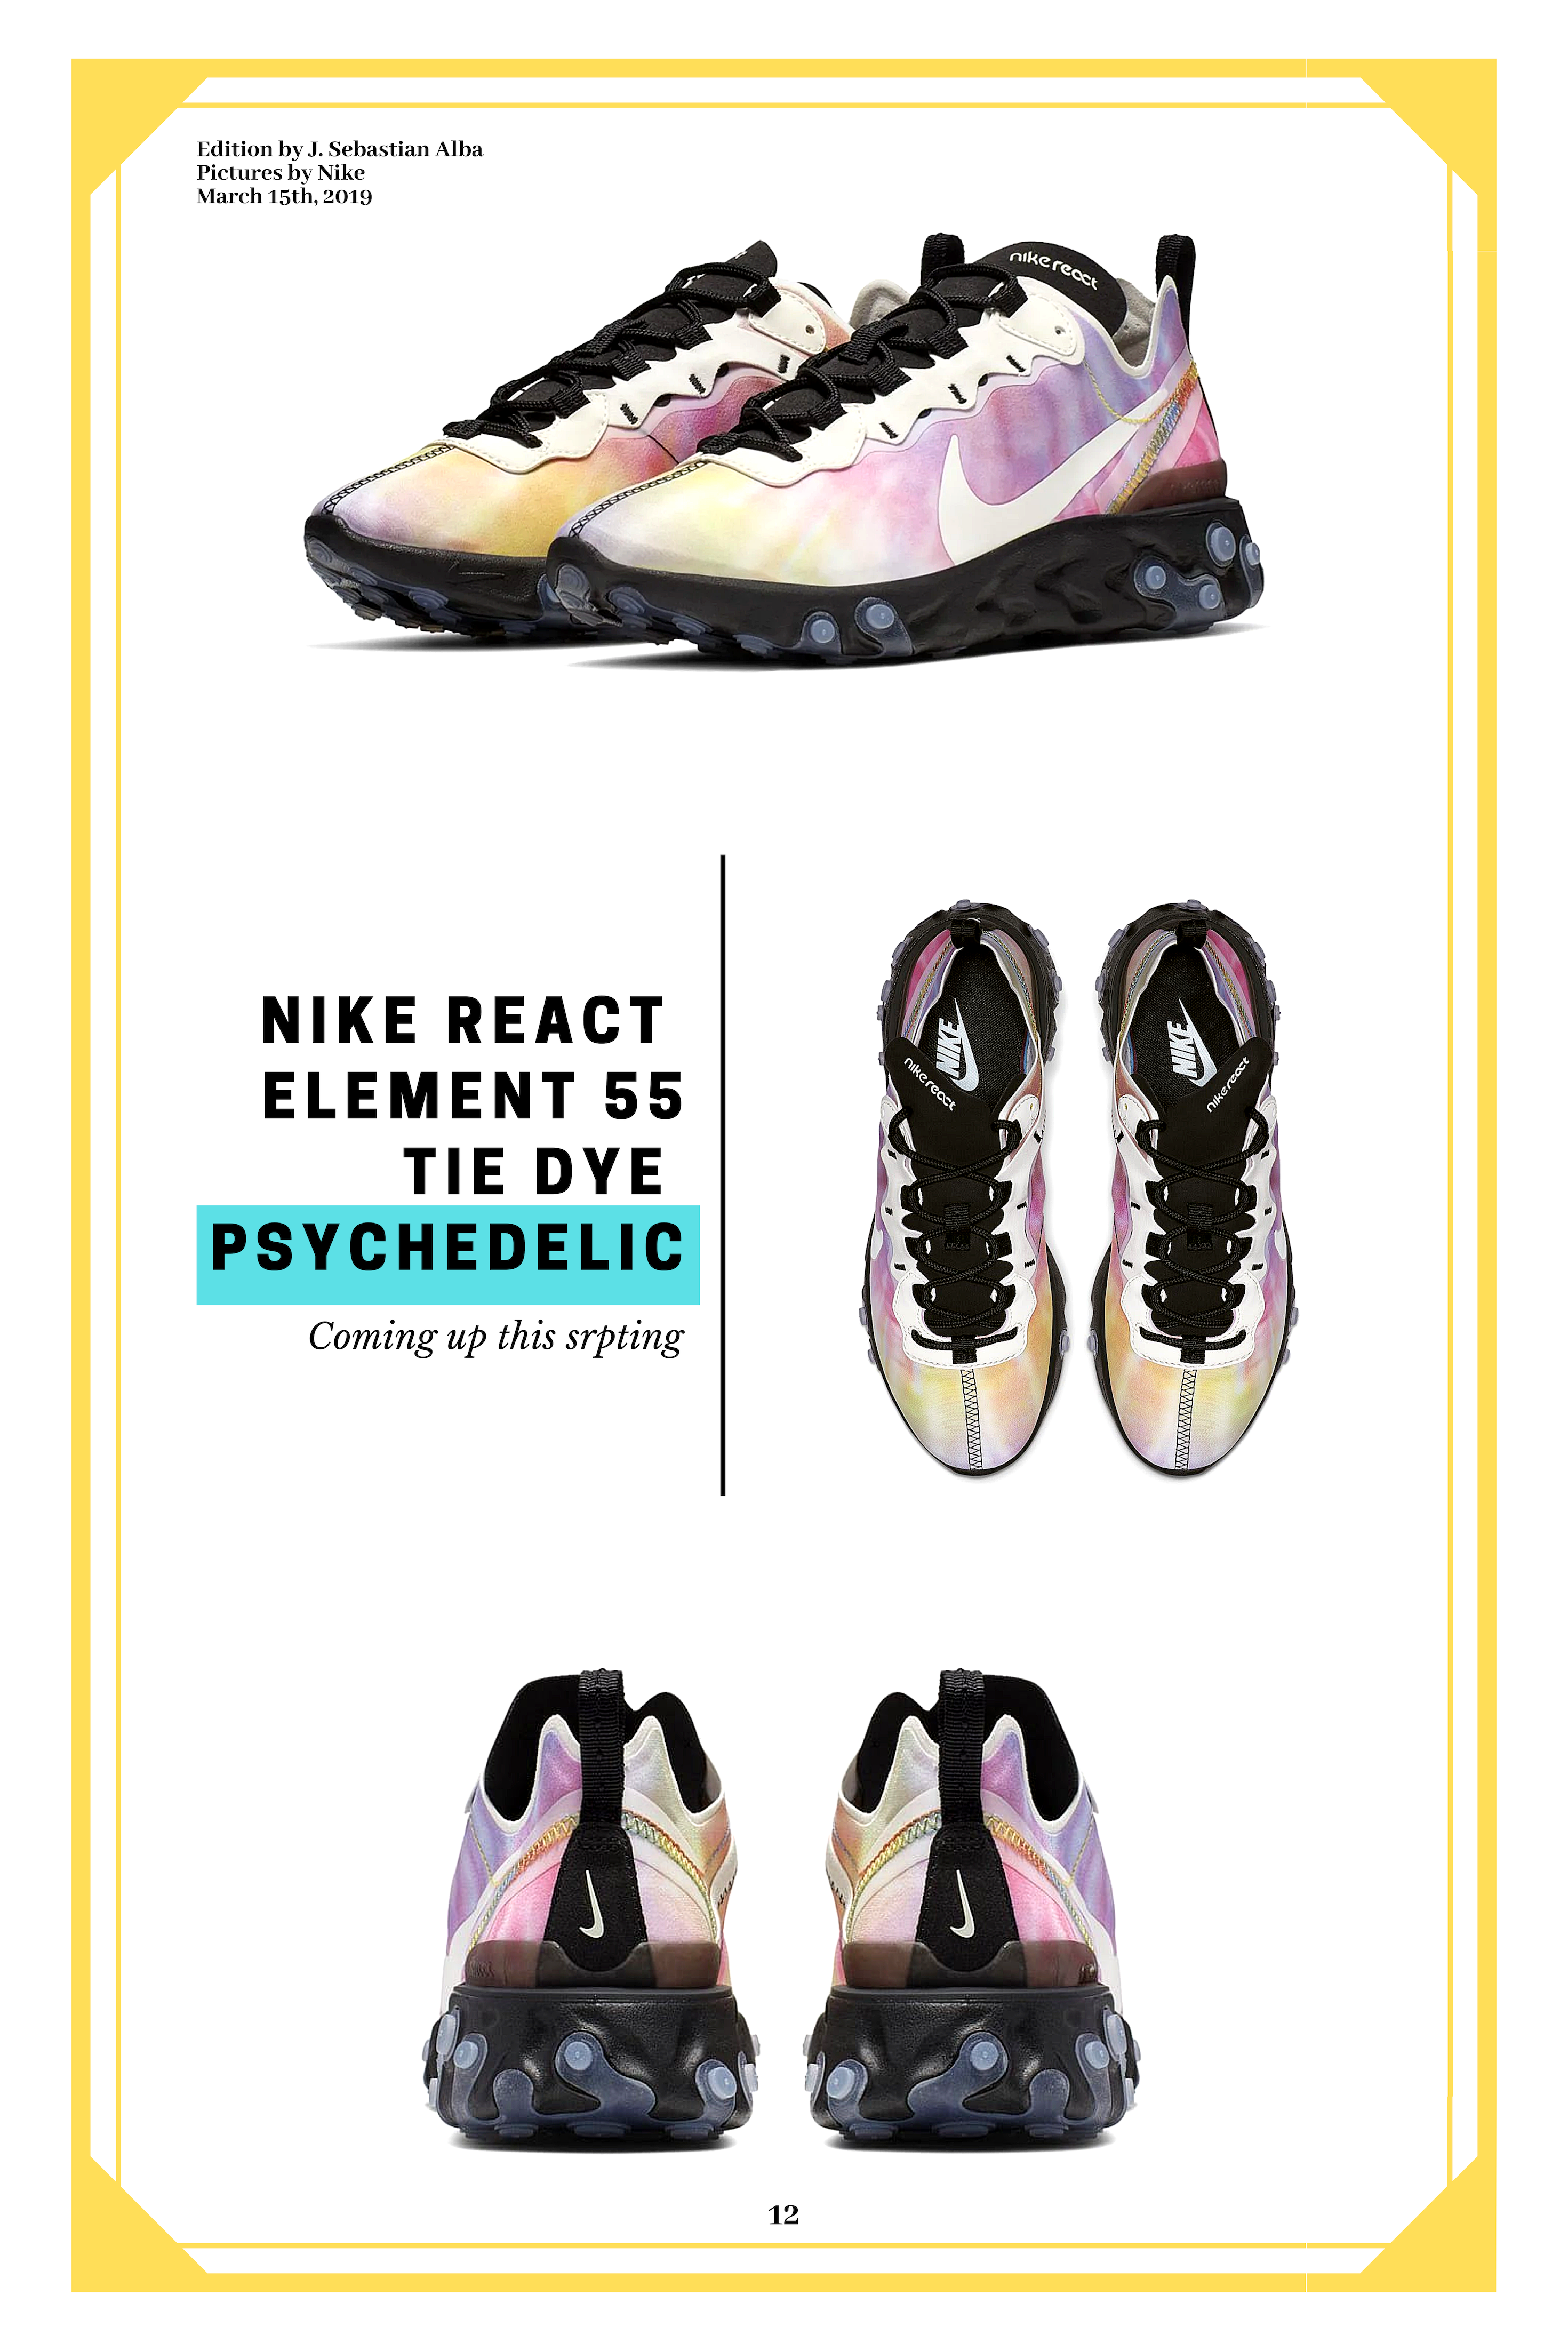 new style 43974 bcbd3 A new colorway for the popular Nike React Element 55, with a psychedelic  approach that